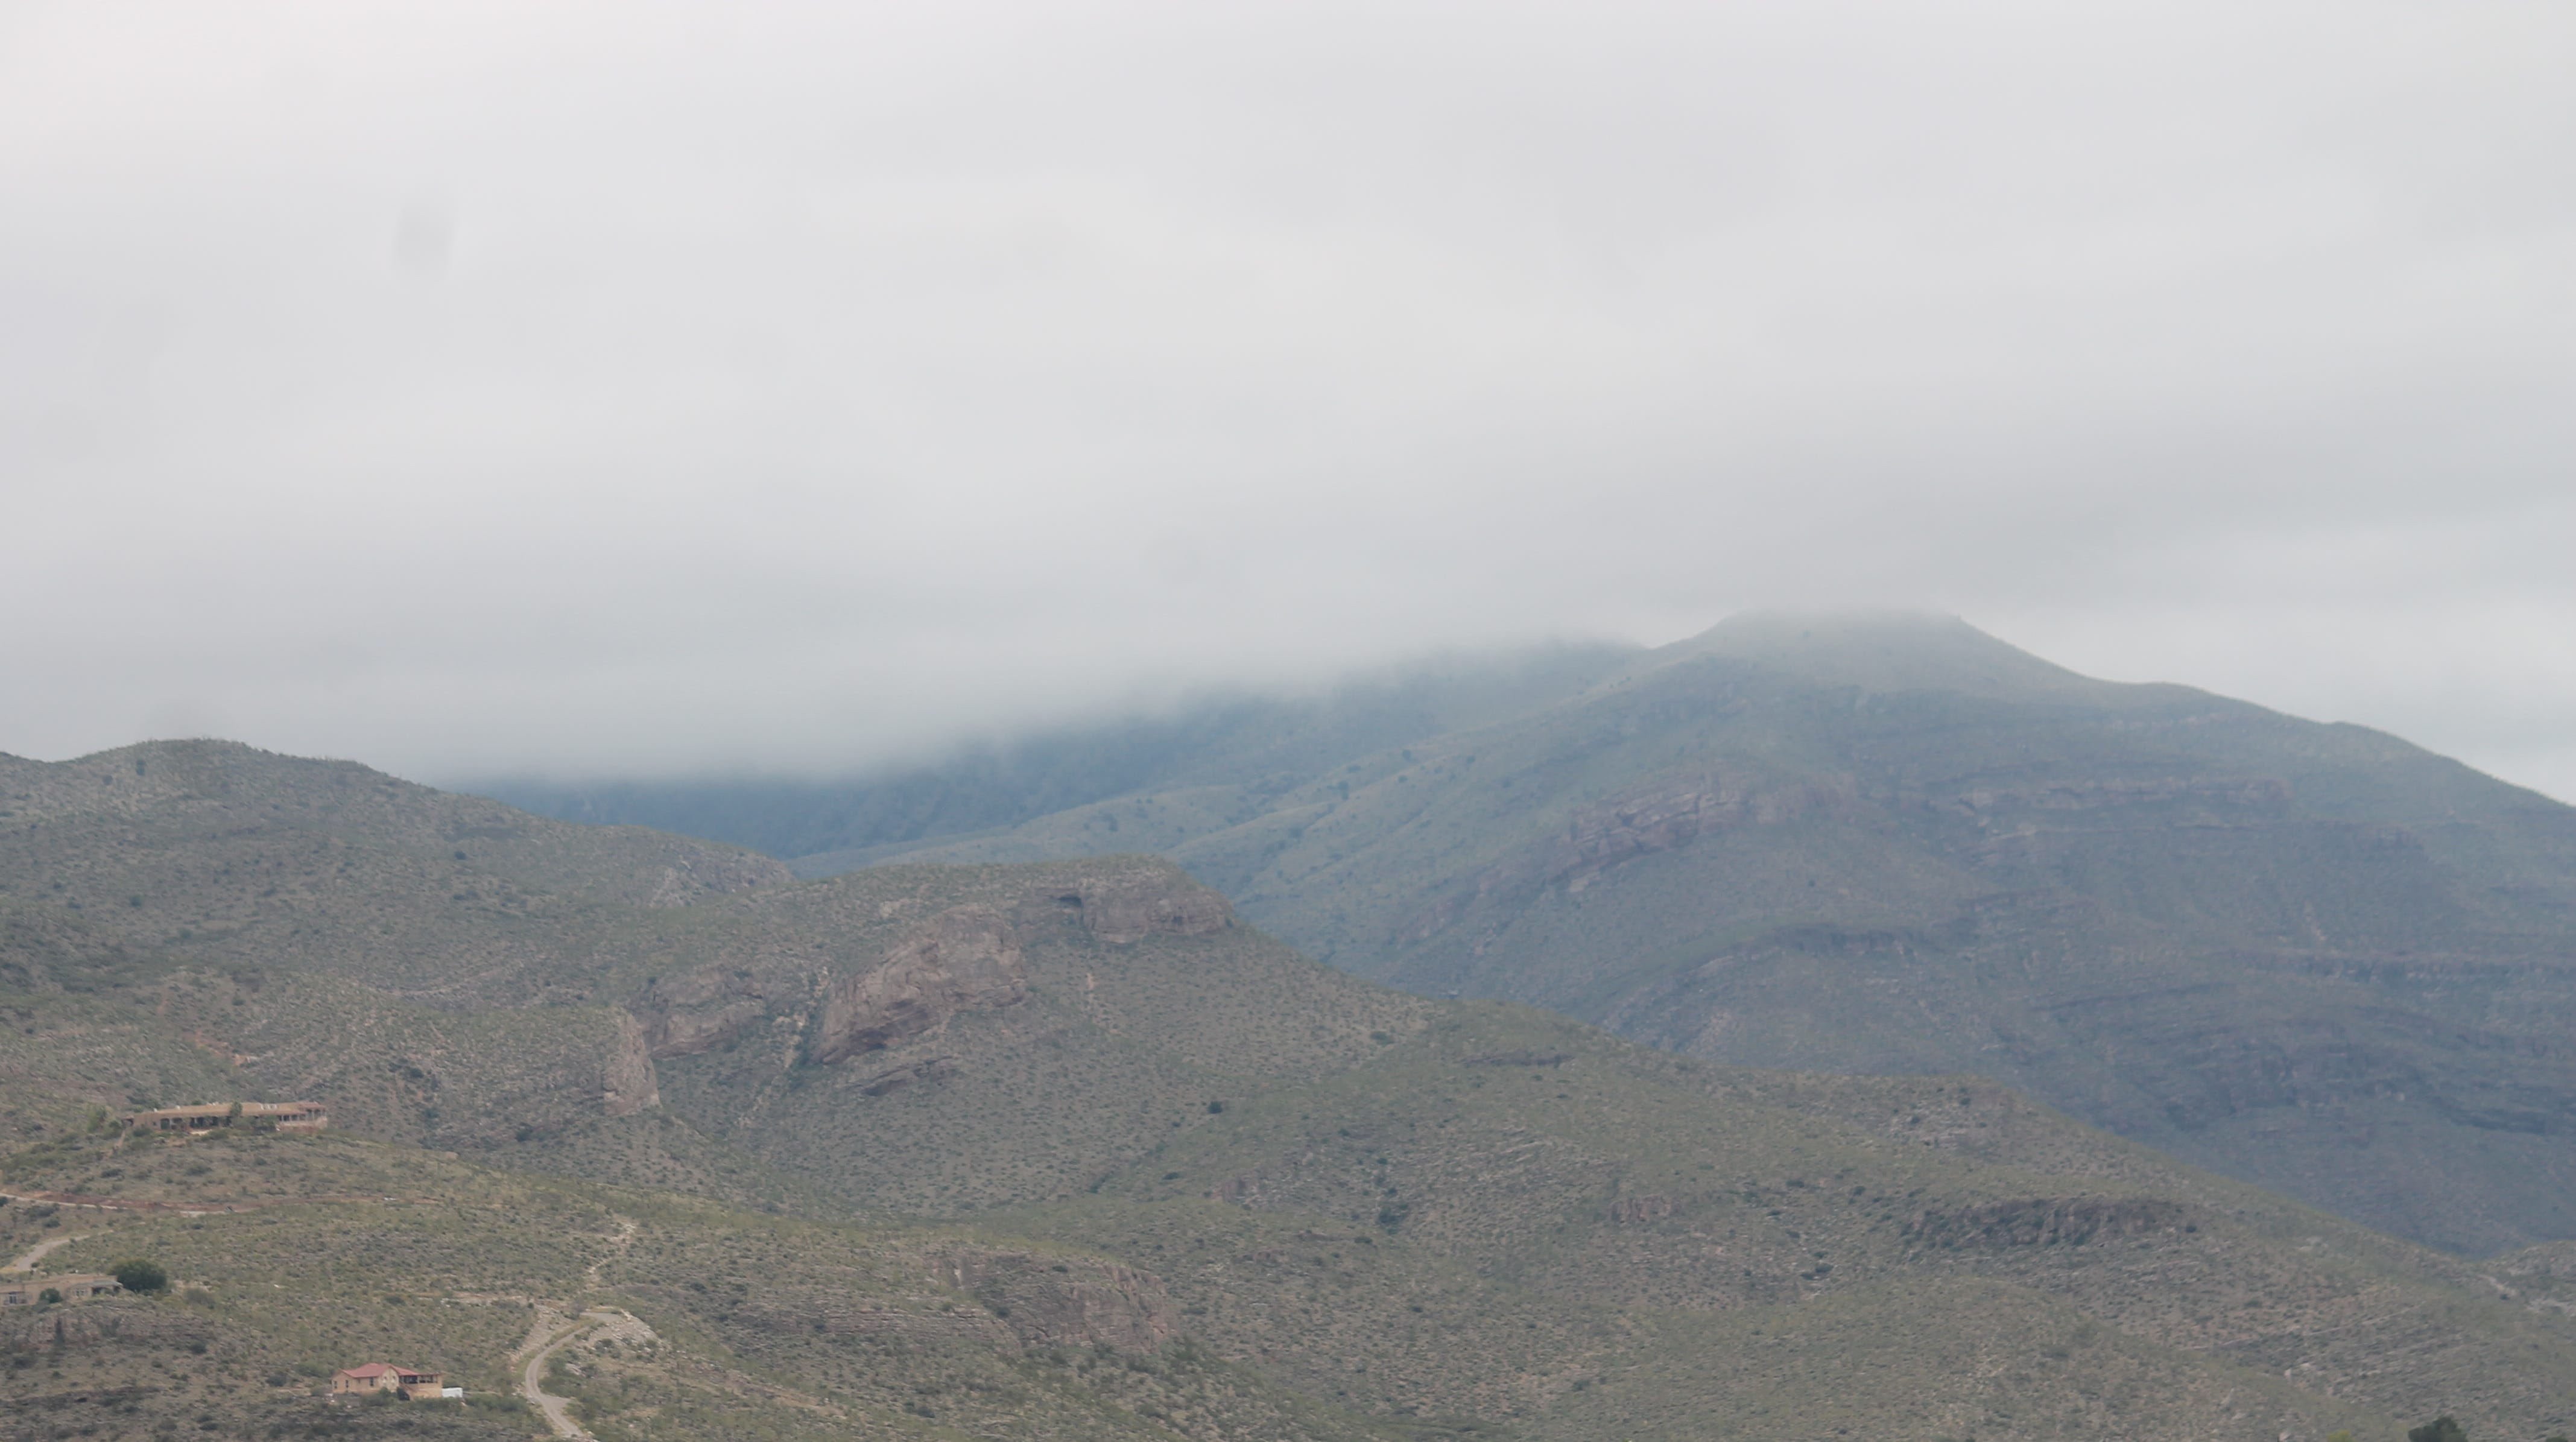 Alamogordo has had an unusually prolonged period of cloudy weather in October, National Weather Service Meteorologist Lance Tripoli said. The cloudy weather, especially on the mountains, is the result of alternating wet and dry, warm and cold weather conditions, he said.